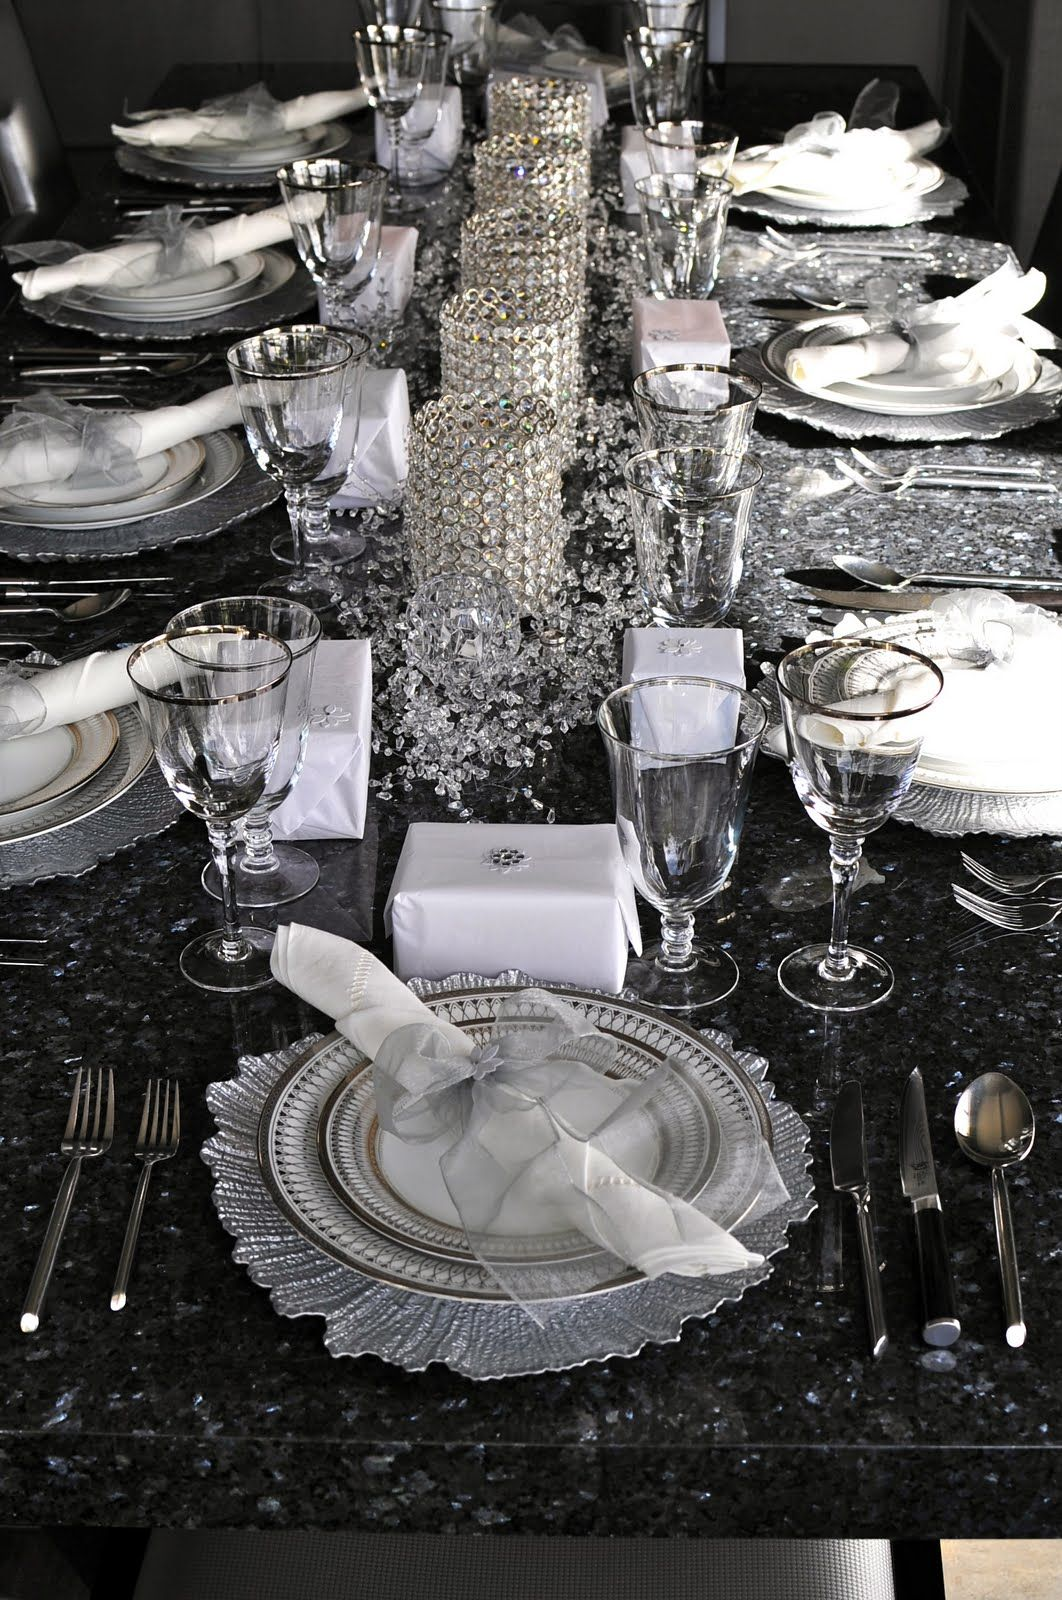 on pr pare le nouvel an couleur argent crystals table. Black Bedroom Furniture Sets. Home Design Ideas